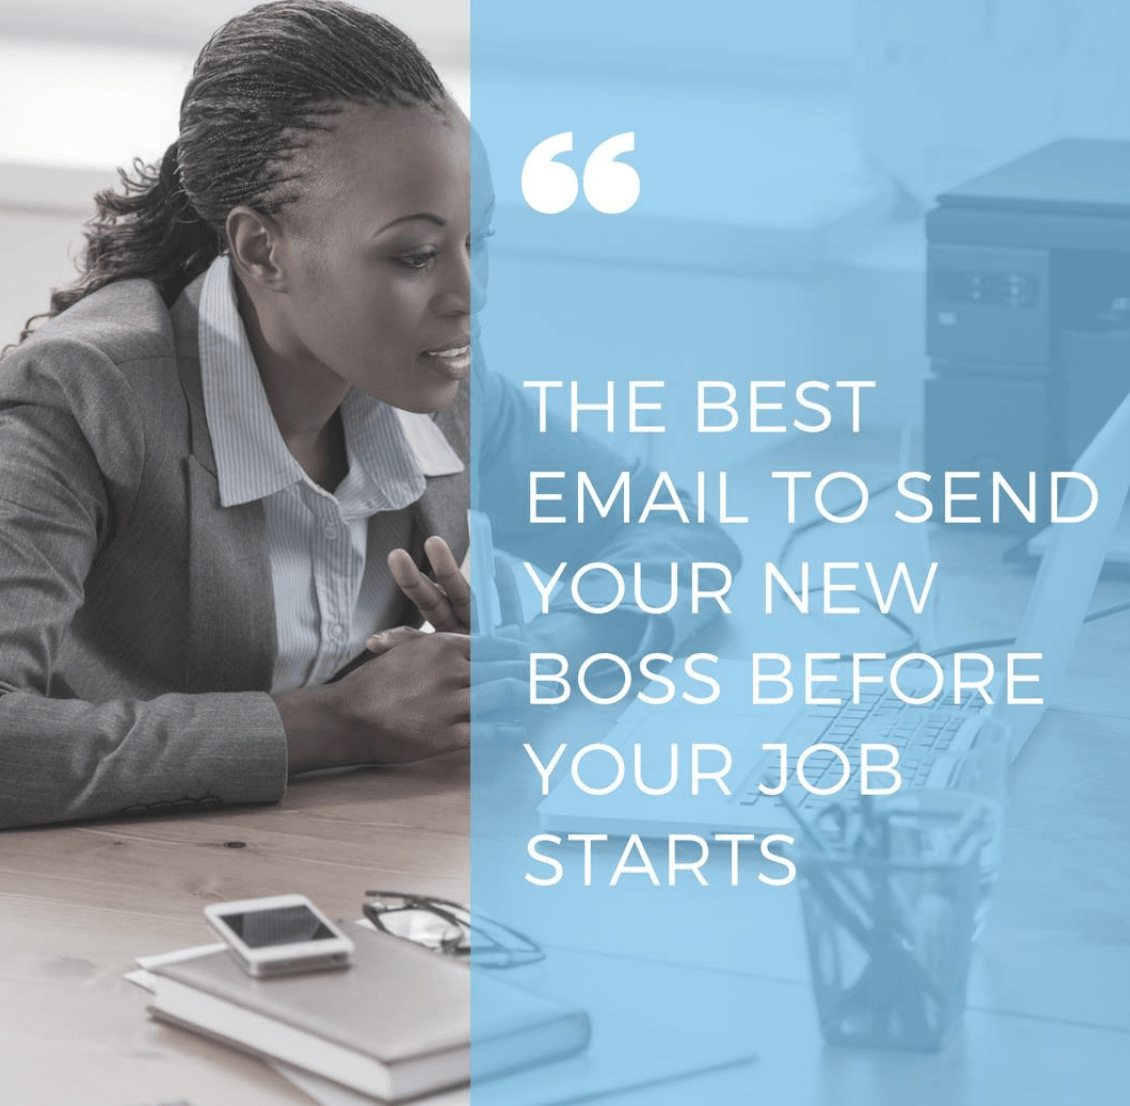 The Best Email to Send Your New Boss Before Your Job Starts